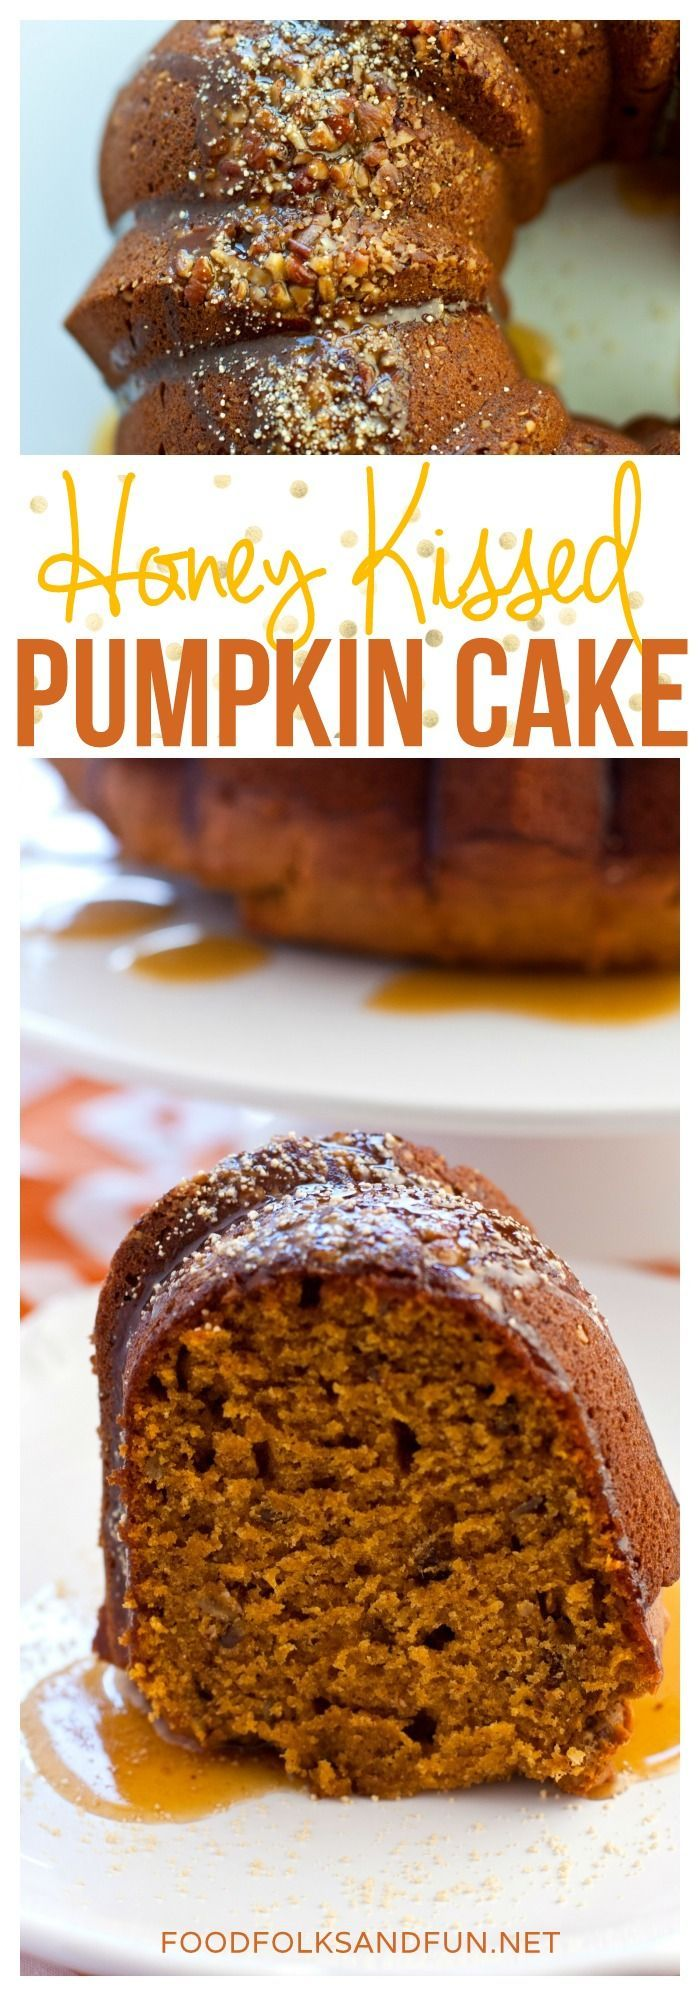 This Honey Kissed Pumpkin Cake is laced with pecans and it is sweetened with tasty honey flavor. Serve this pumpkin cake for dessert or for brunch! | Fall Dessert | Pumpkin | Pumpkin Dessert | Pumpkin Spice | Pumpkin Cake